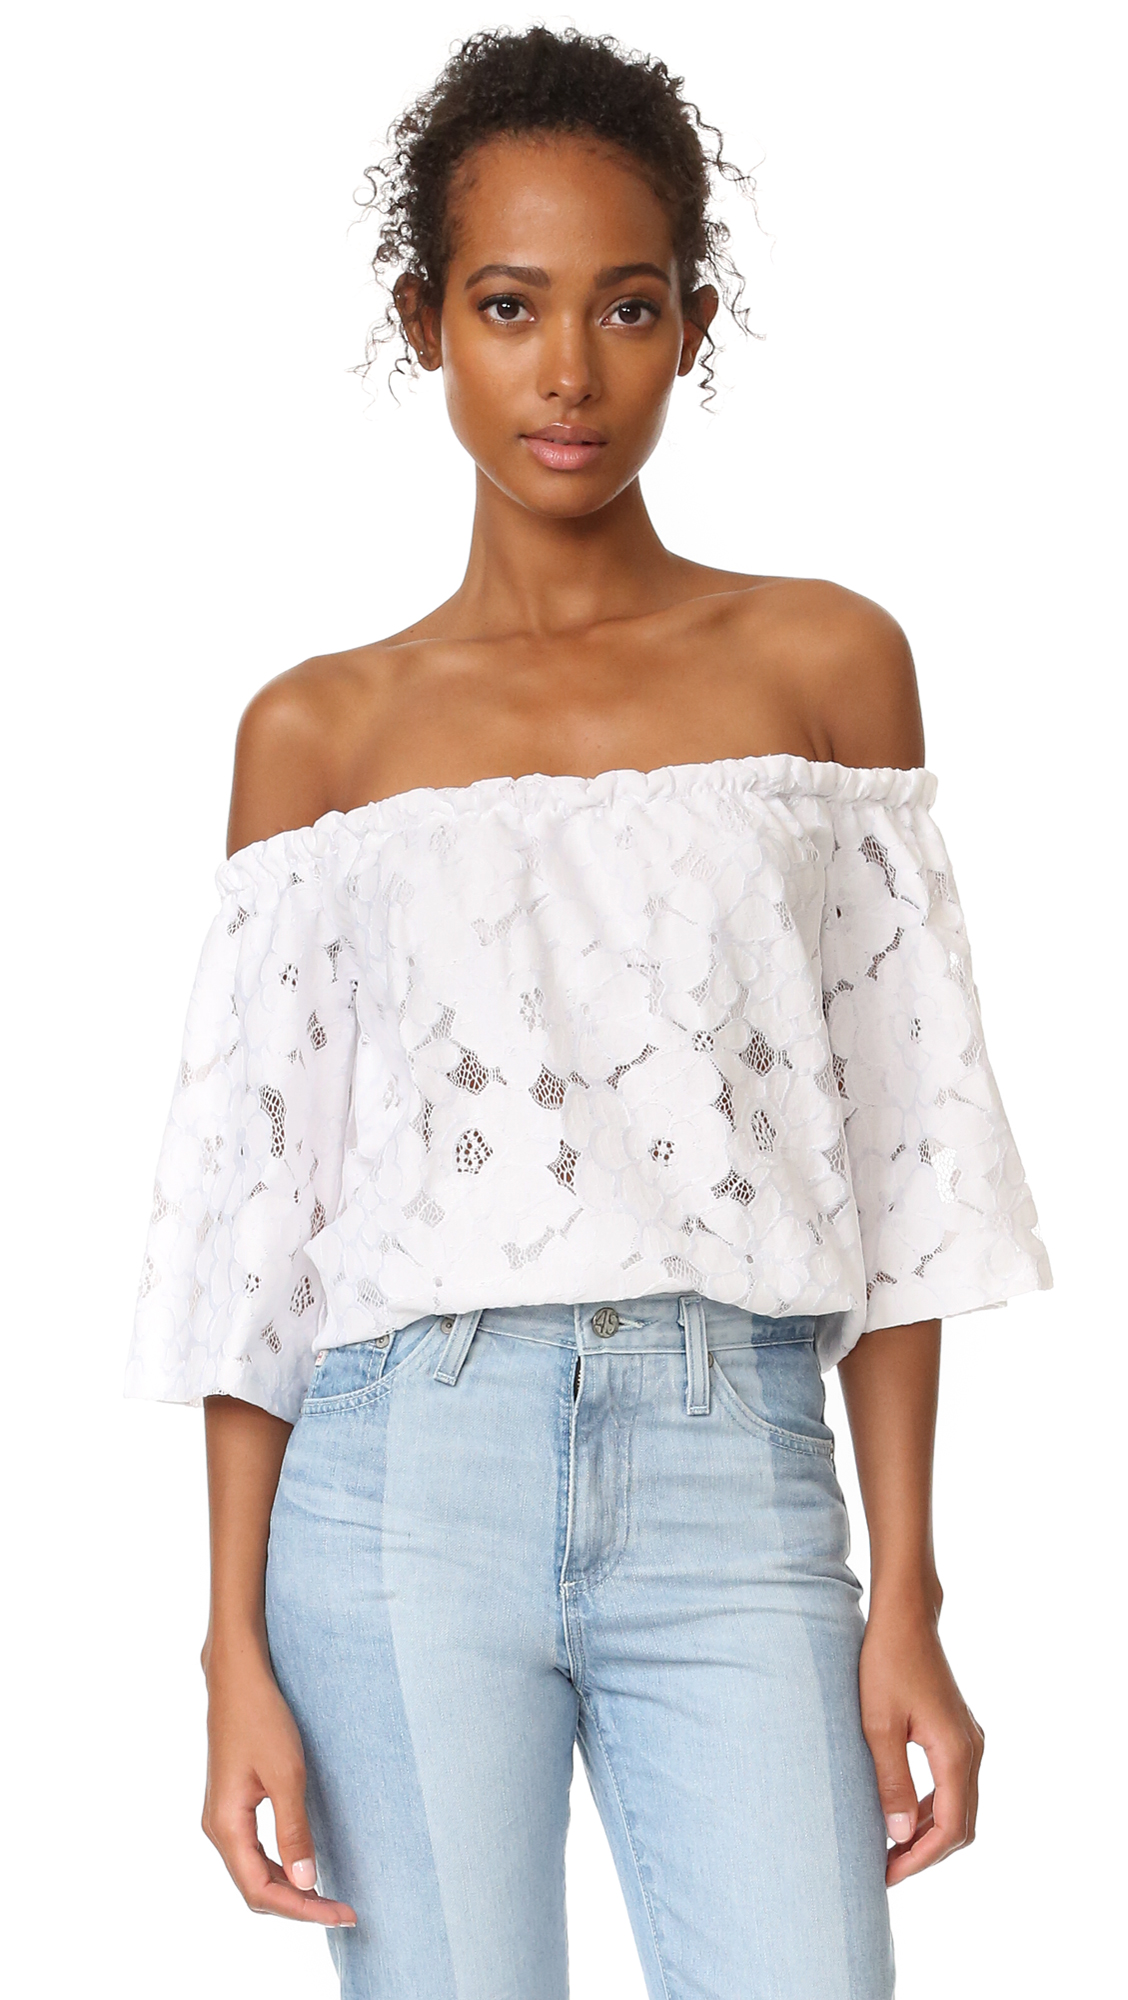 An off shoulder lace Jack by BB Dakota blouse in a swingy silhouette. 3/4 sleeves. Optional shoulder straps. Built in bandeau bralette lining. Fabric: Lace. Shell: 60% cotton/40% nylon. Lining: 95% rayon/5% spandex. Hand wash or dry clean. Imported,